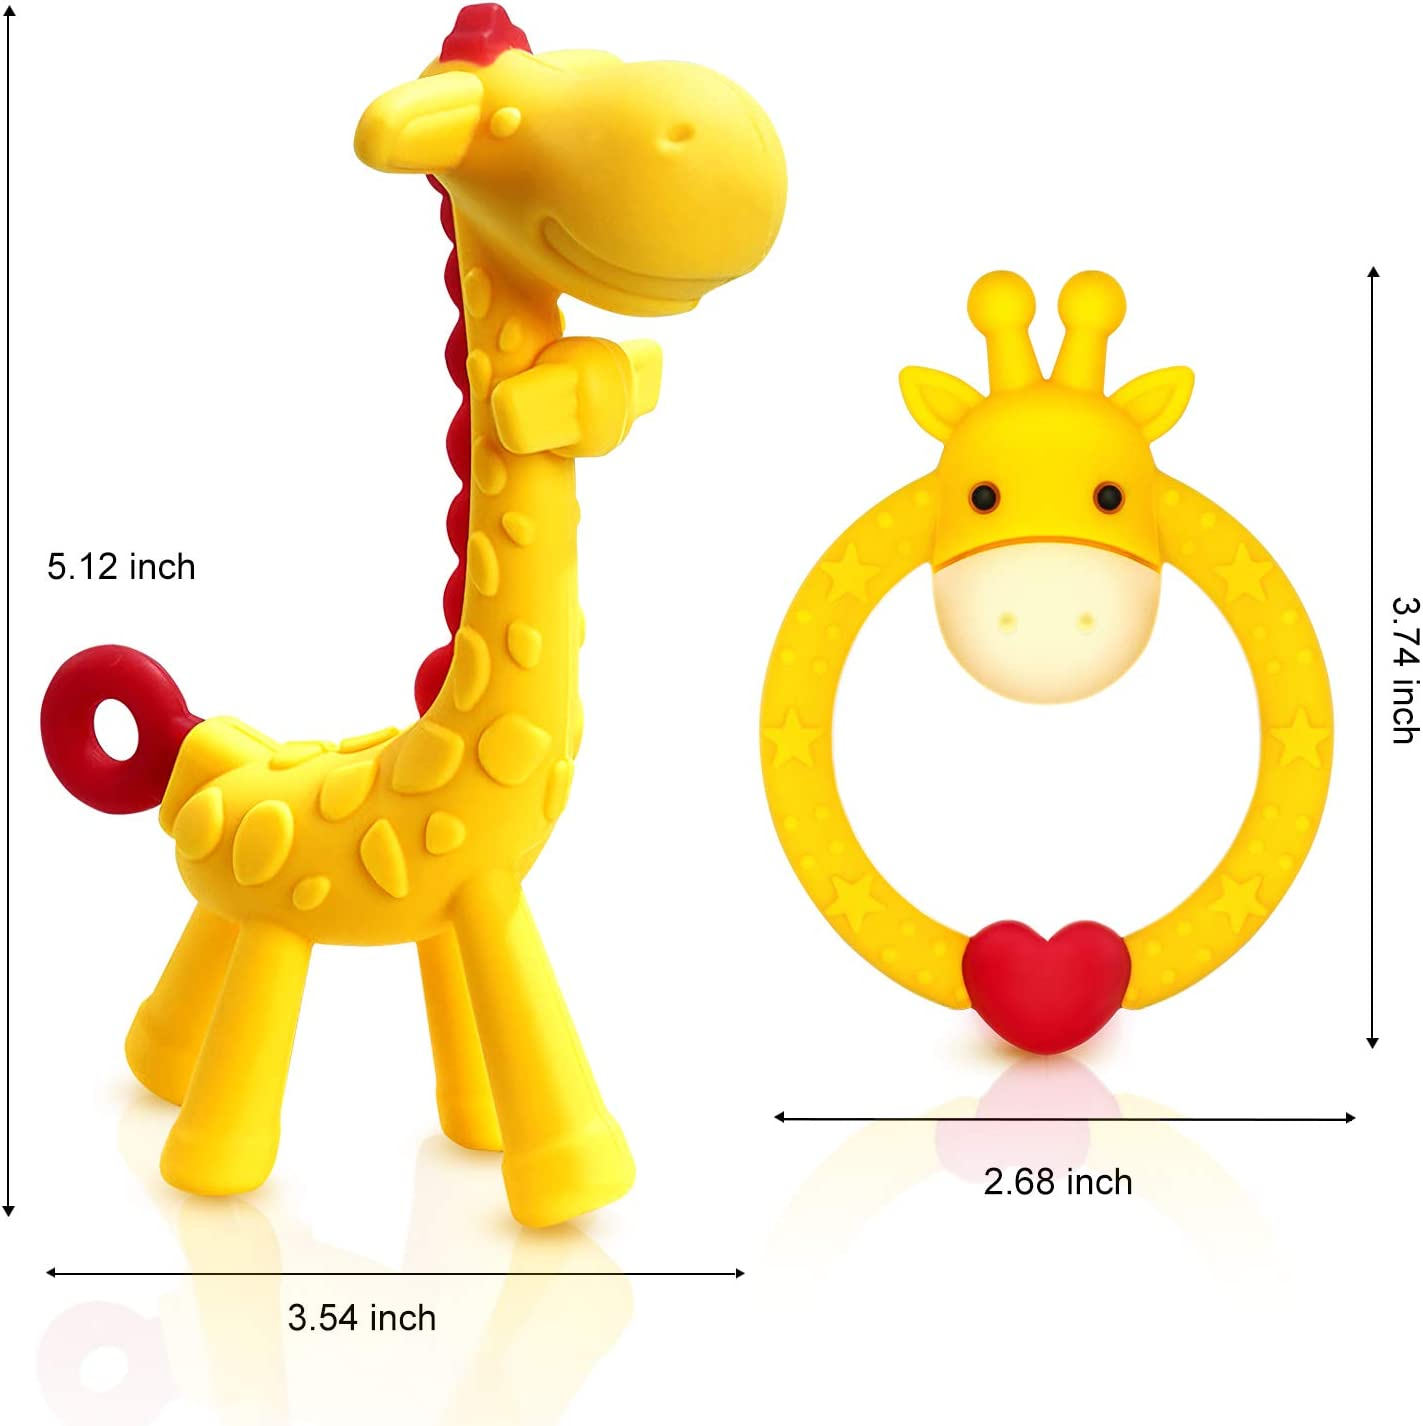 for 3 Months Above Infant Sore Gums Pain Relief Set of 2 Different Teethers Pink SHare/&Care BPA Free Silicone Giraffe and Giraffe Ring Baby Teething Toy with Storage Case